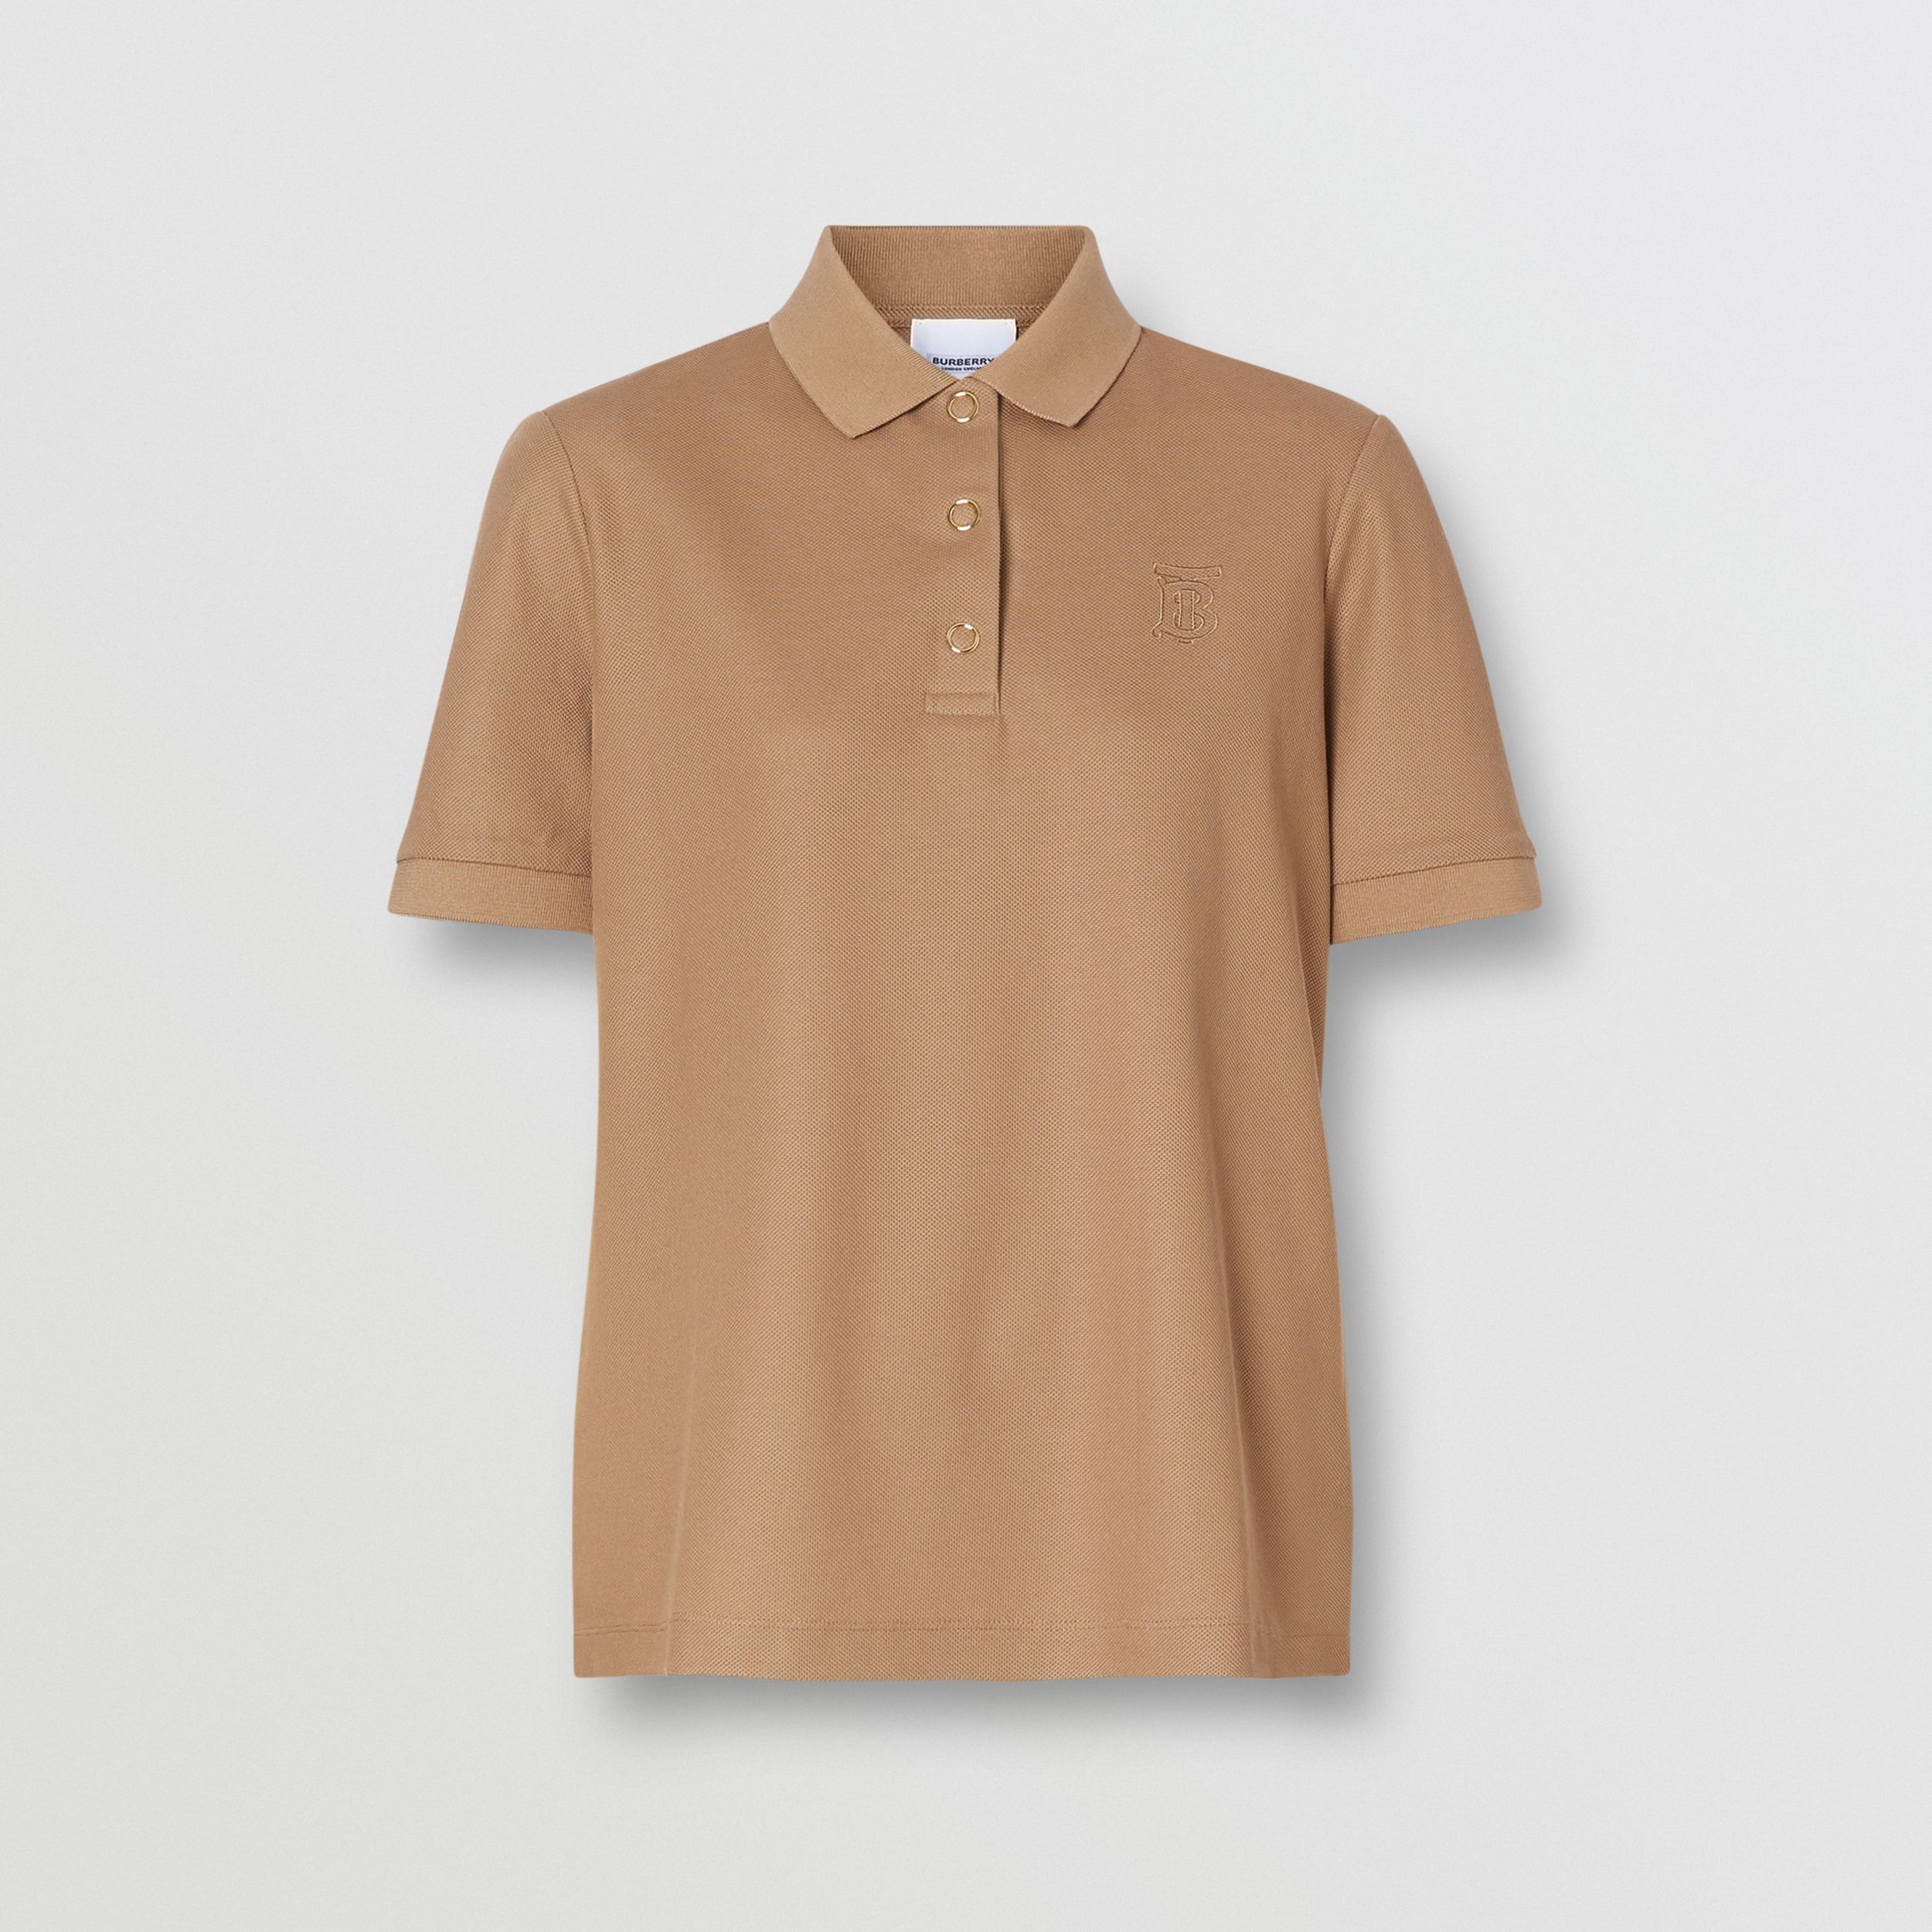 Monogram Motif Cotton Piqué Polo Shirt in Camel - Women | Burberry United Kingdom - 4